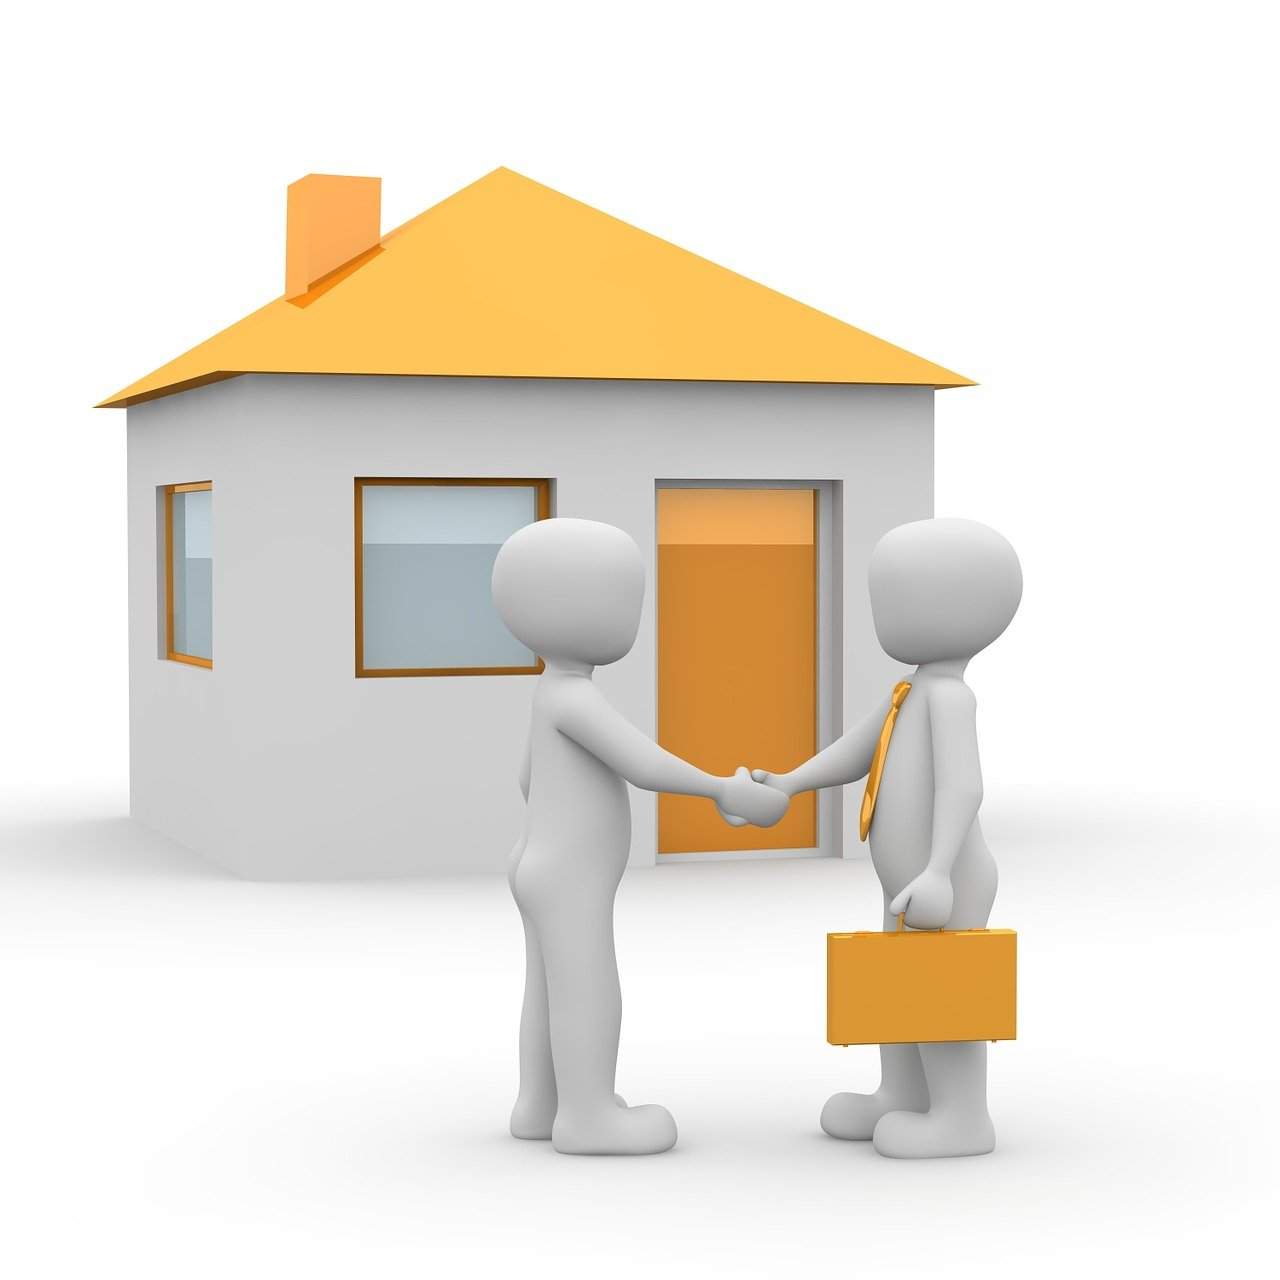 Realtors for Buying or Selling Property